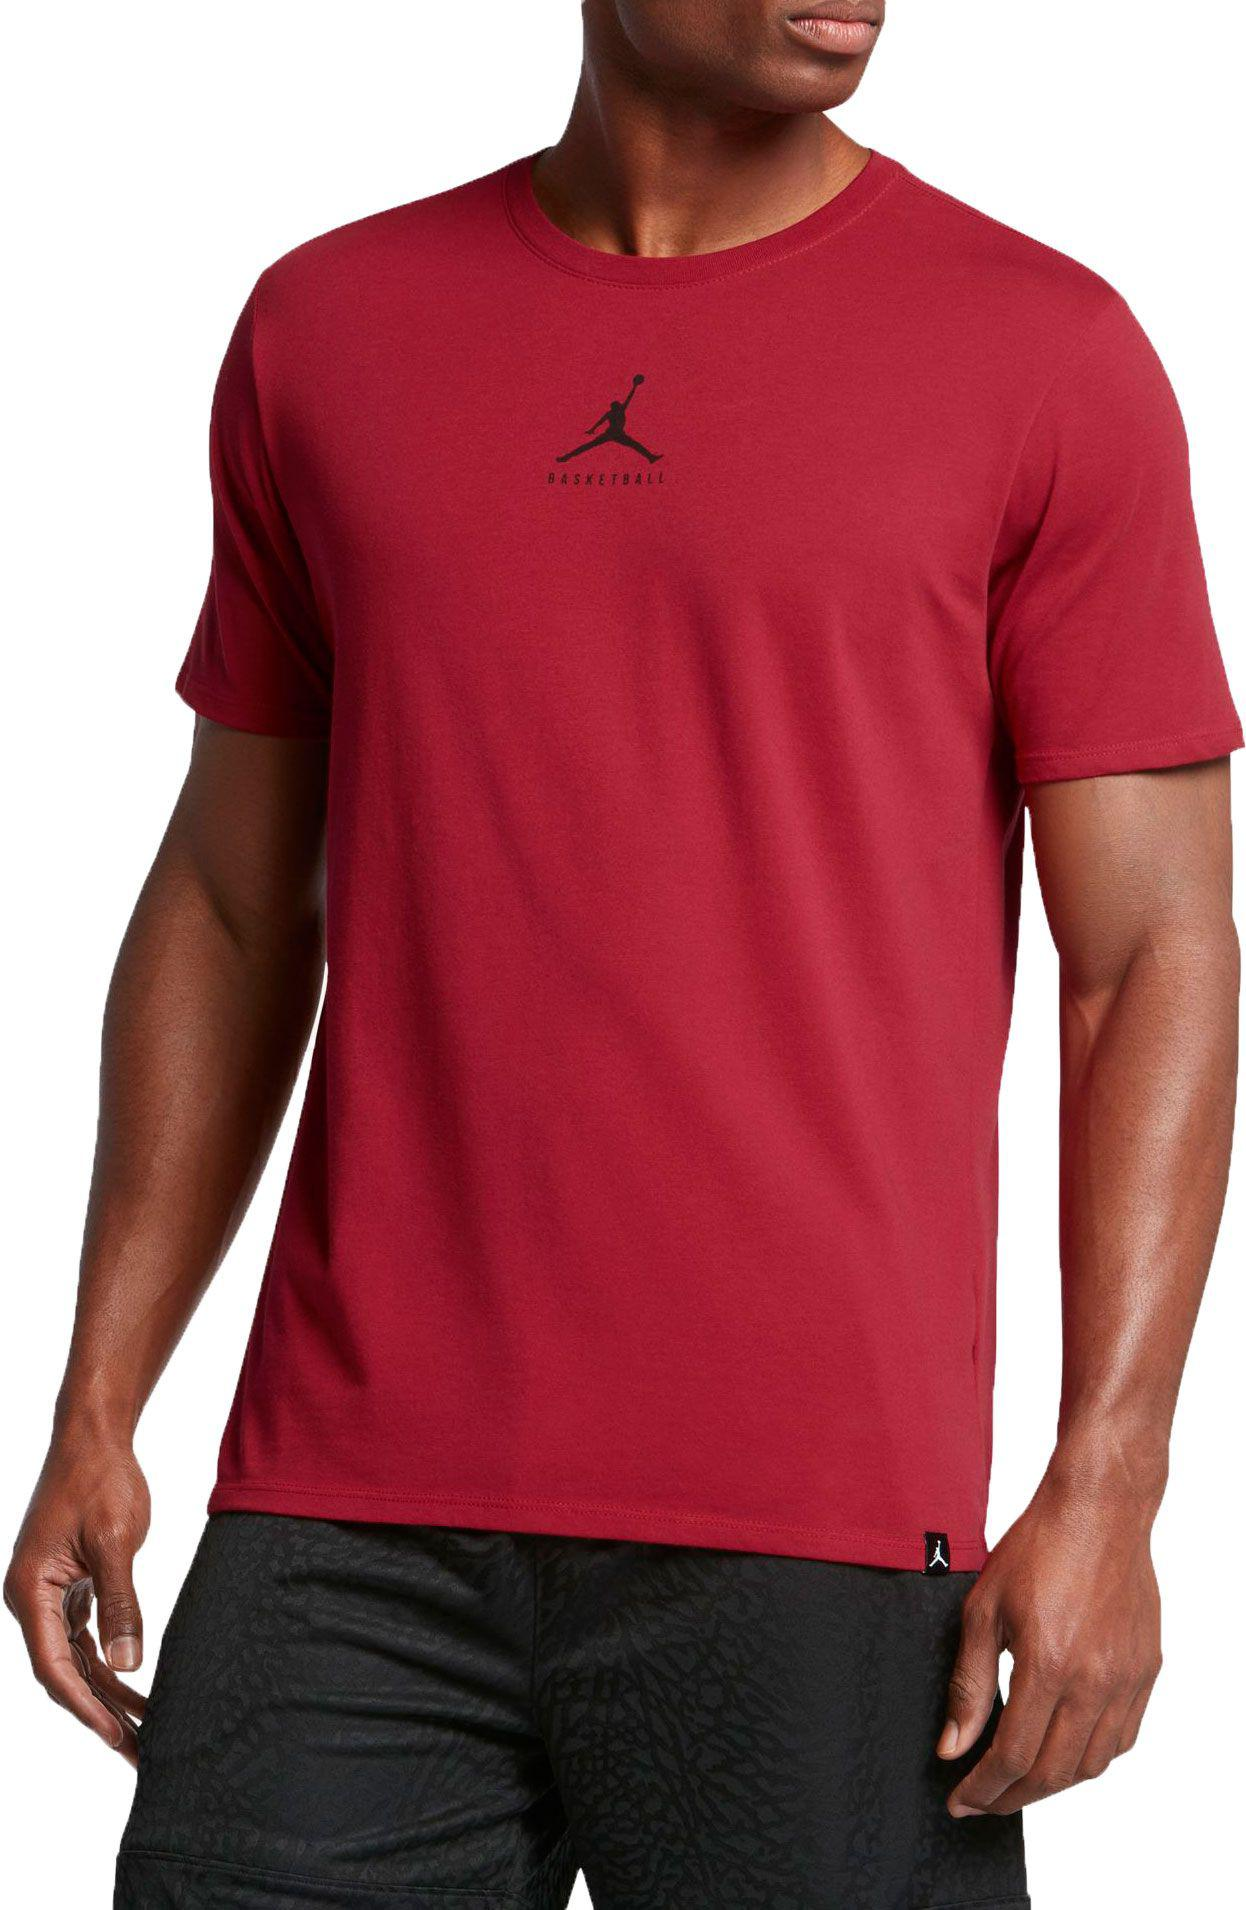 bf9b375b12dc89 Pink And Black Jordan Shirt